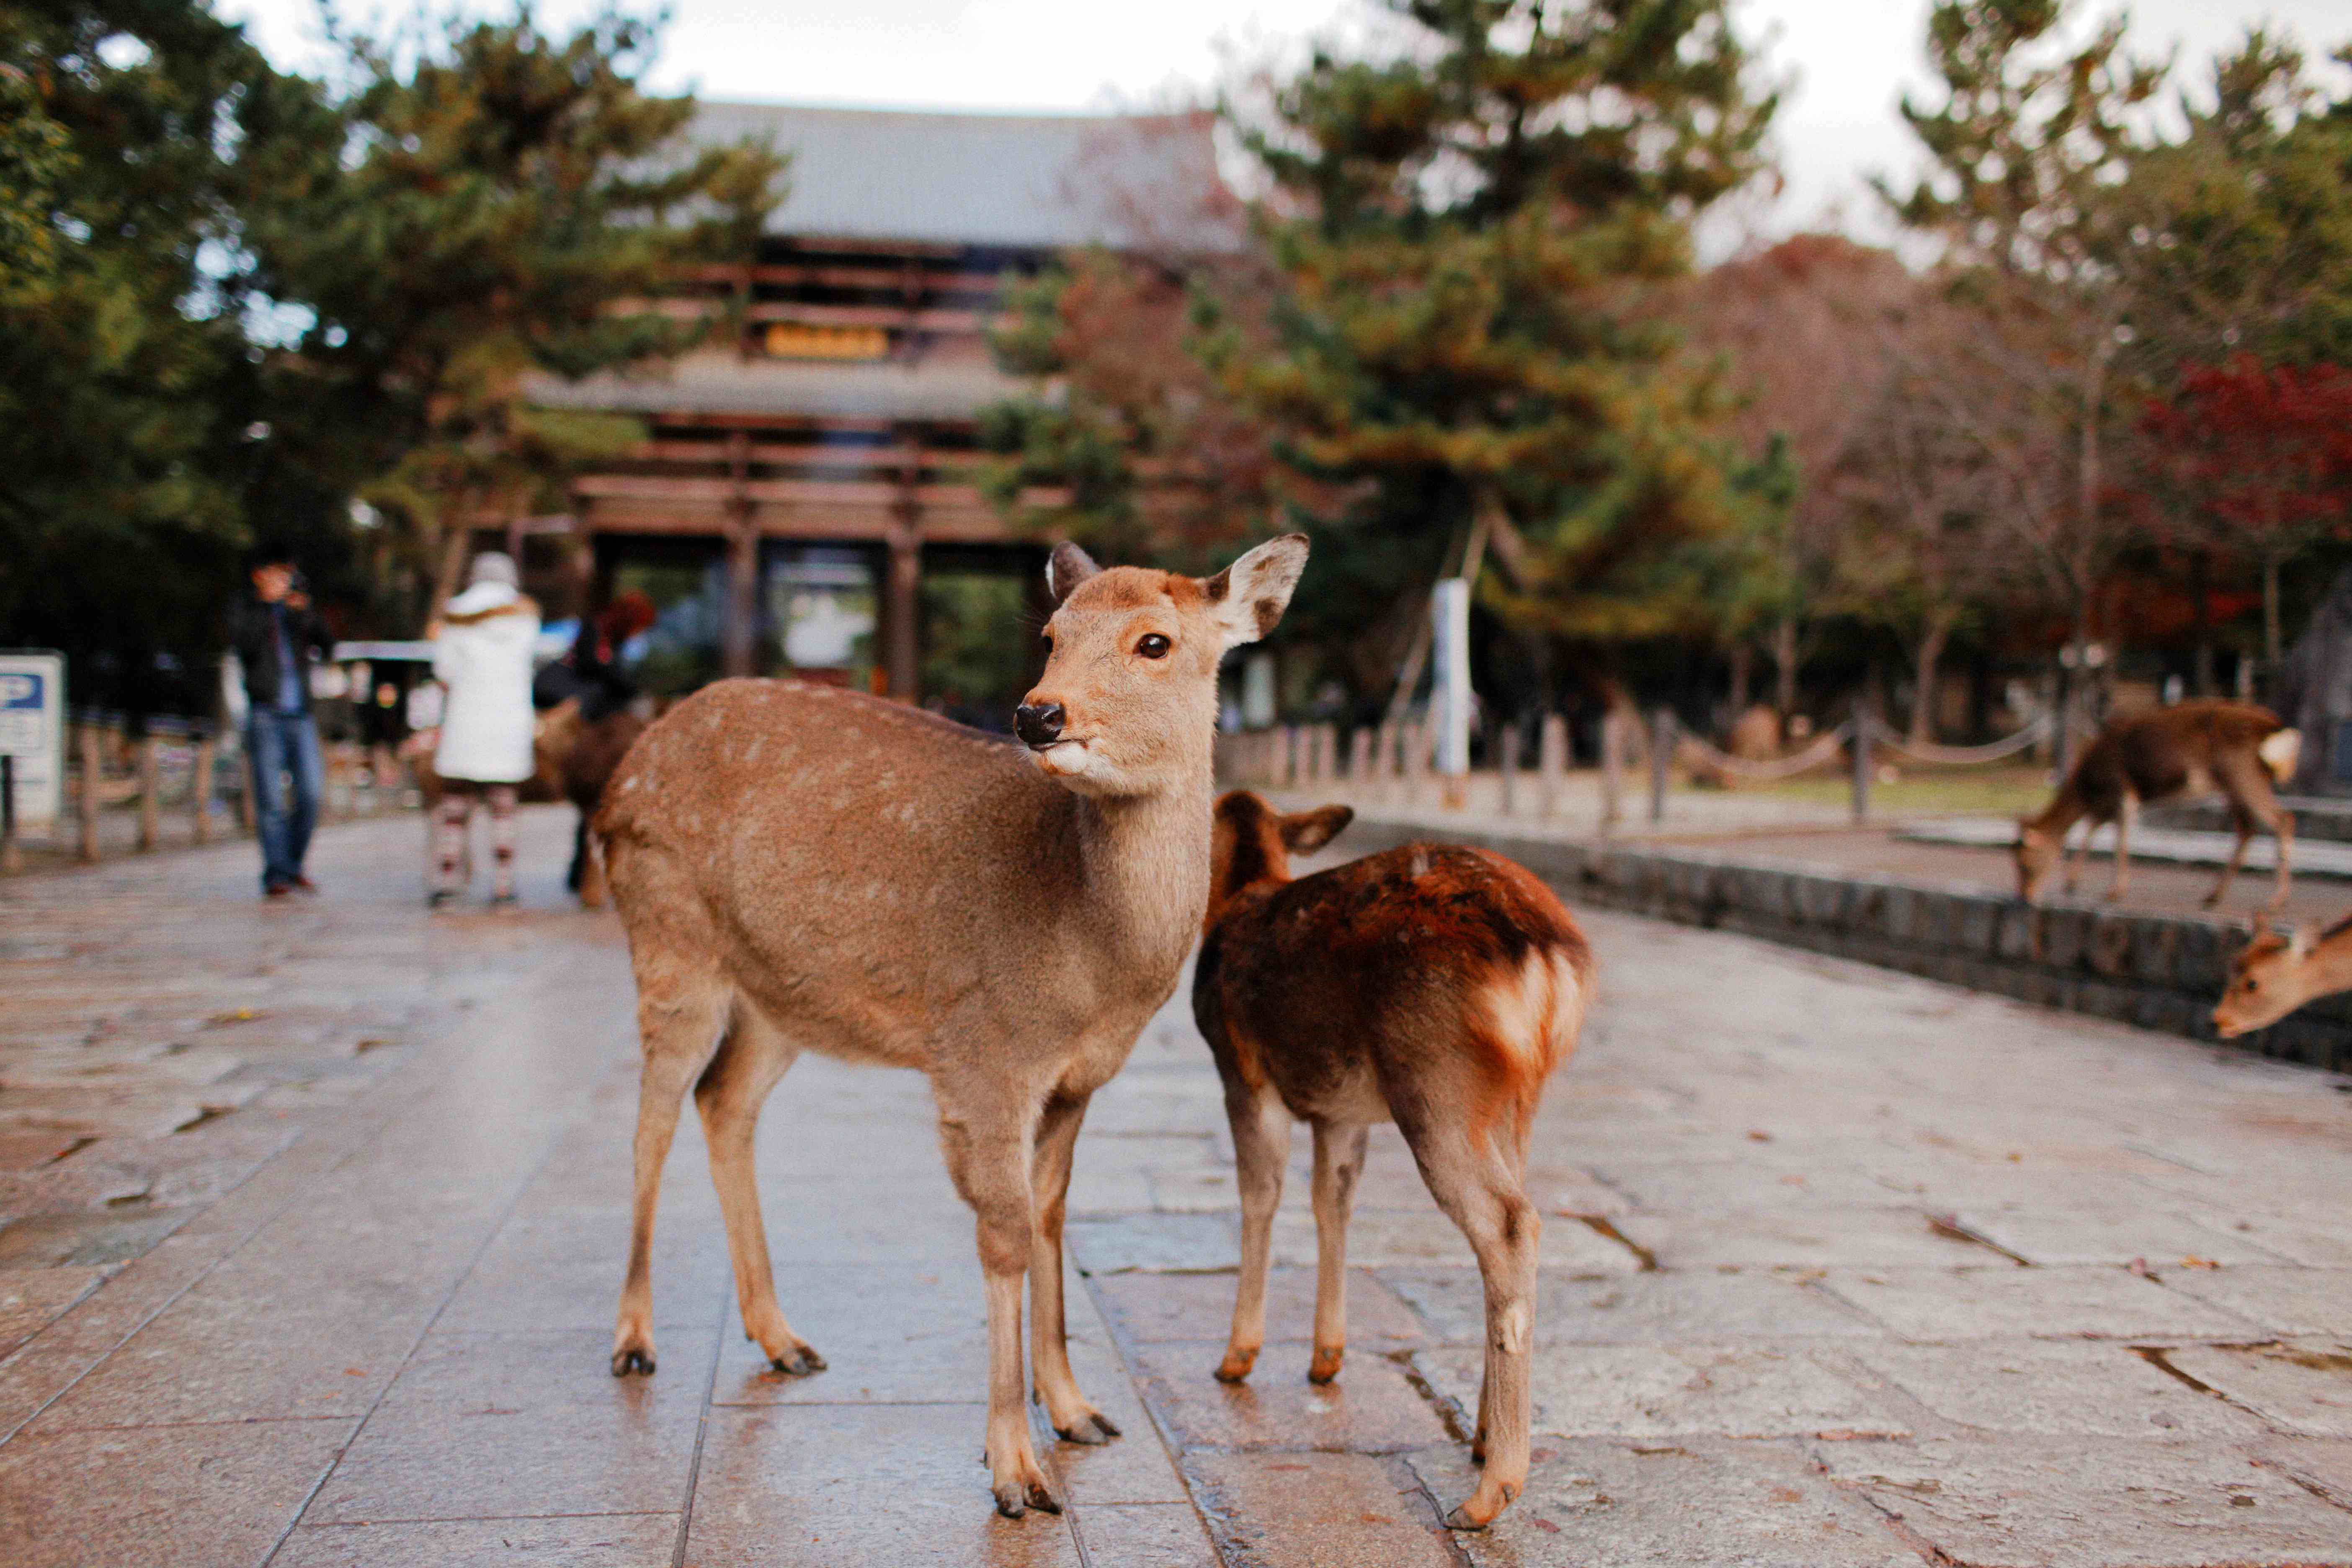 two deer standing on a pathway in nara park with a small cluster of people in the background